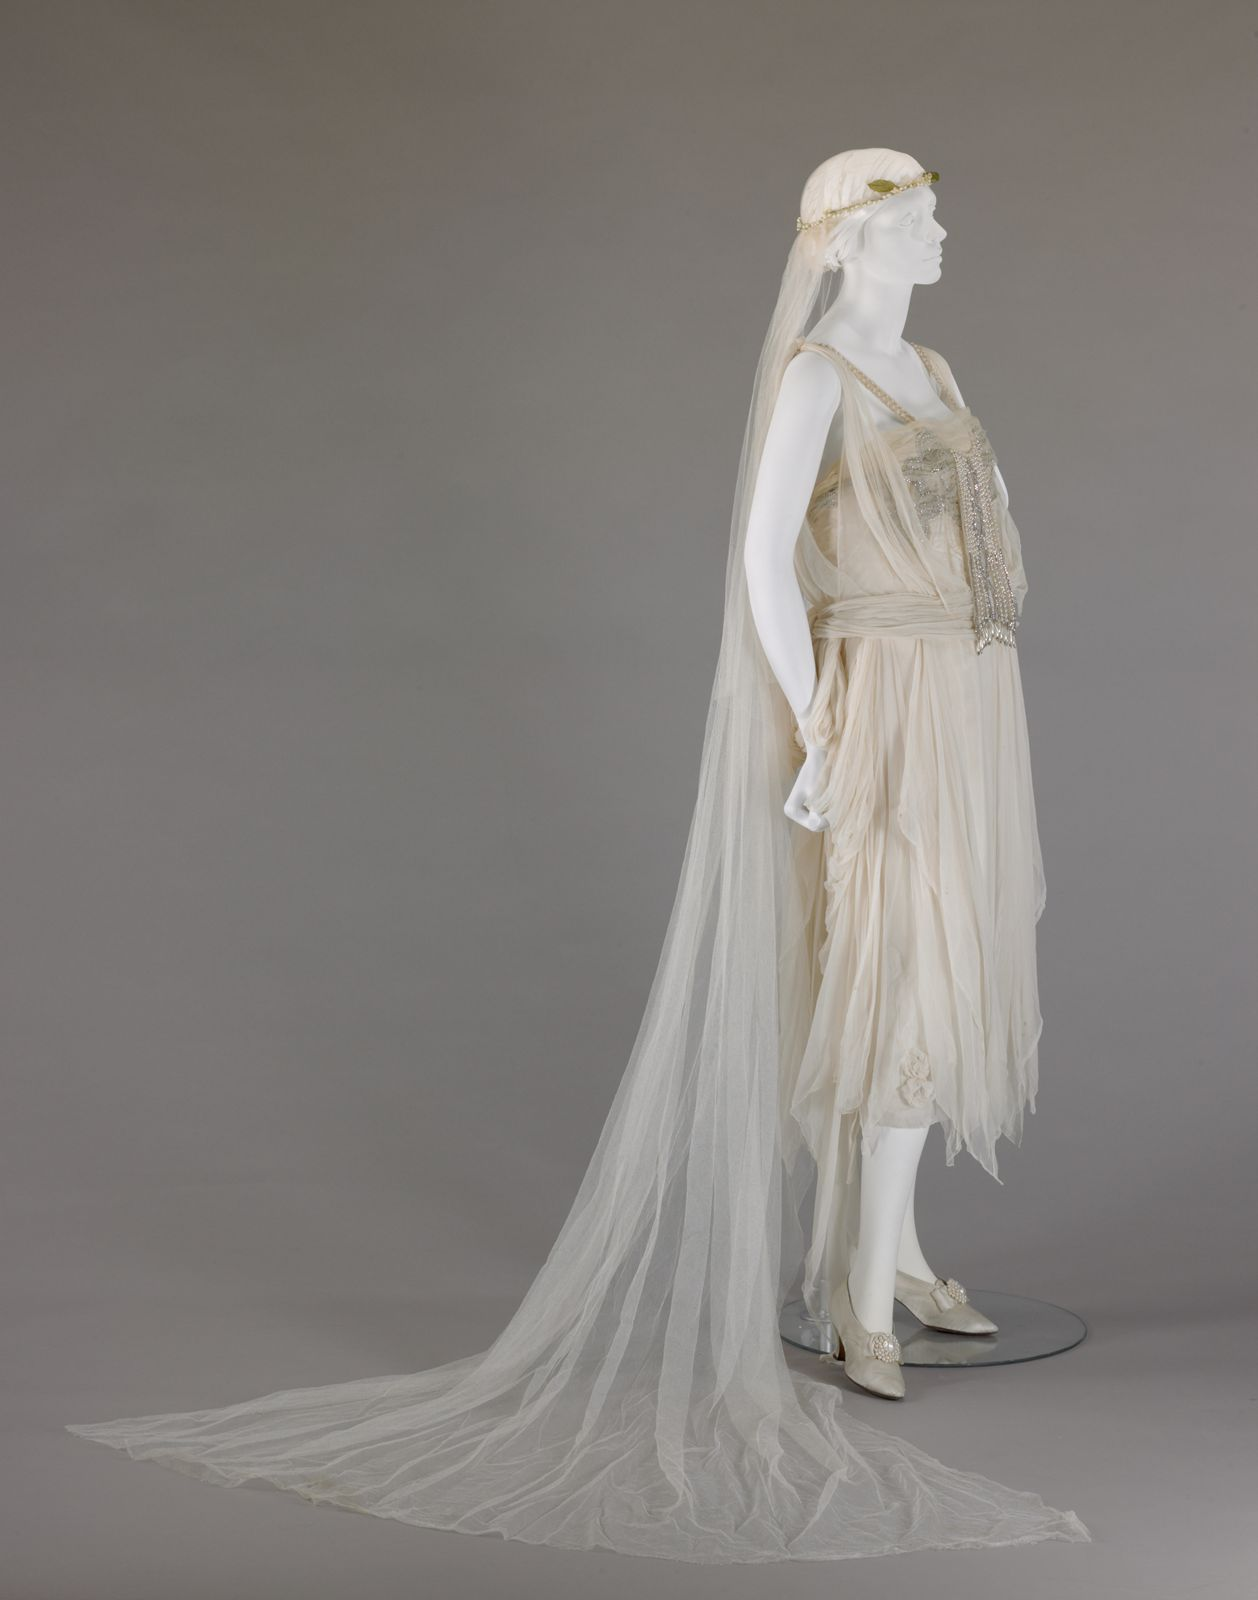 1920 wedding dress  Wedding dress with veil  by George Philip Meier From the